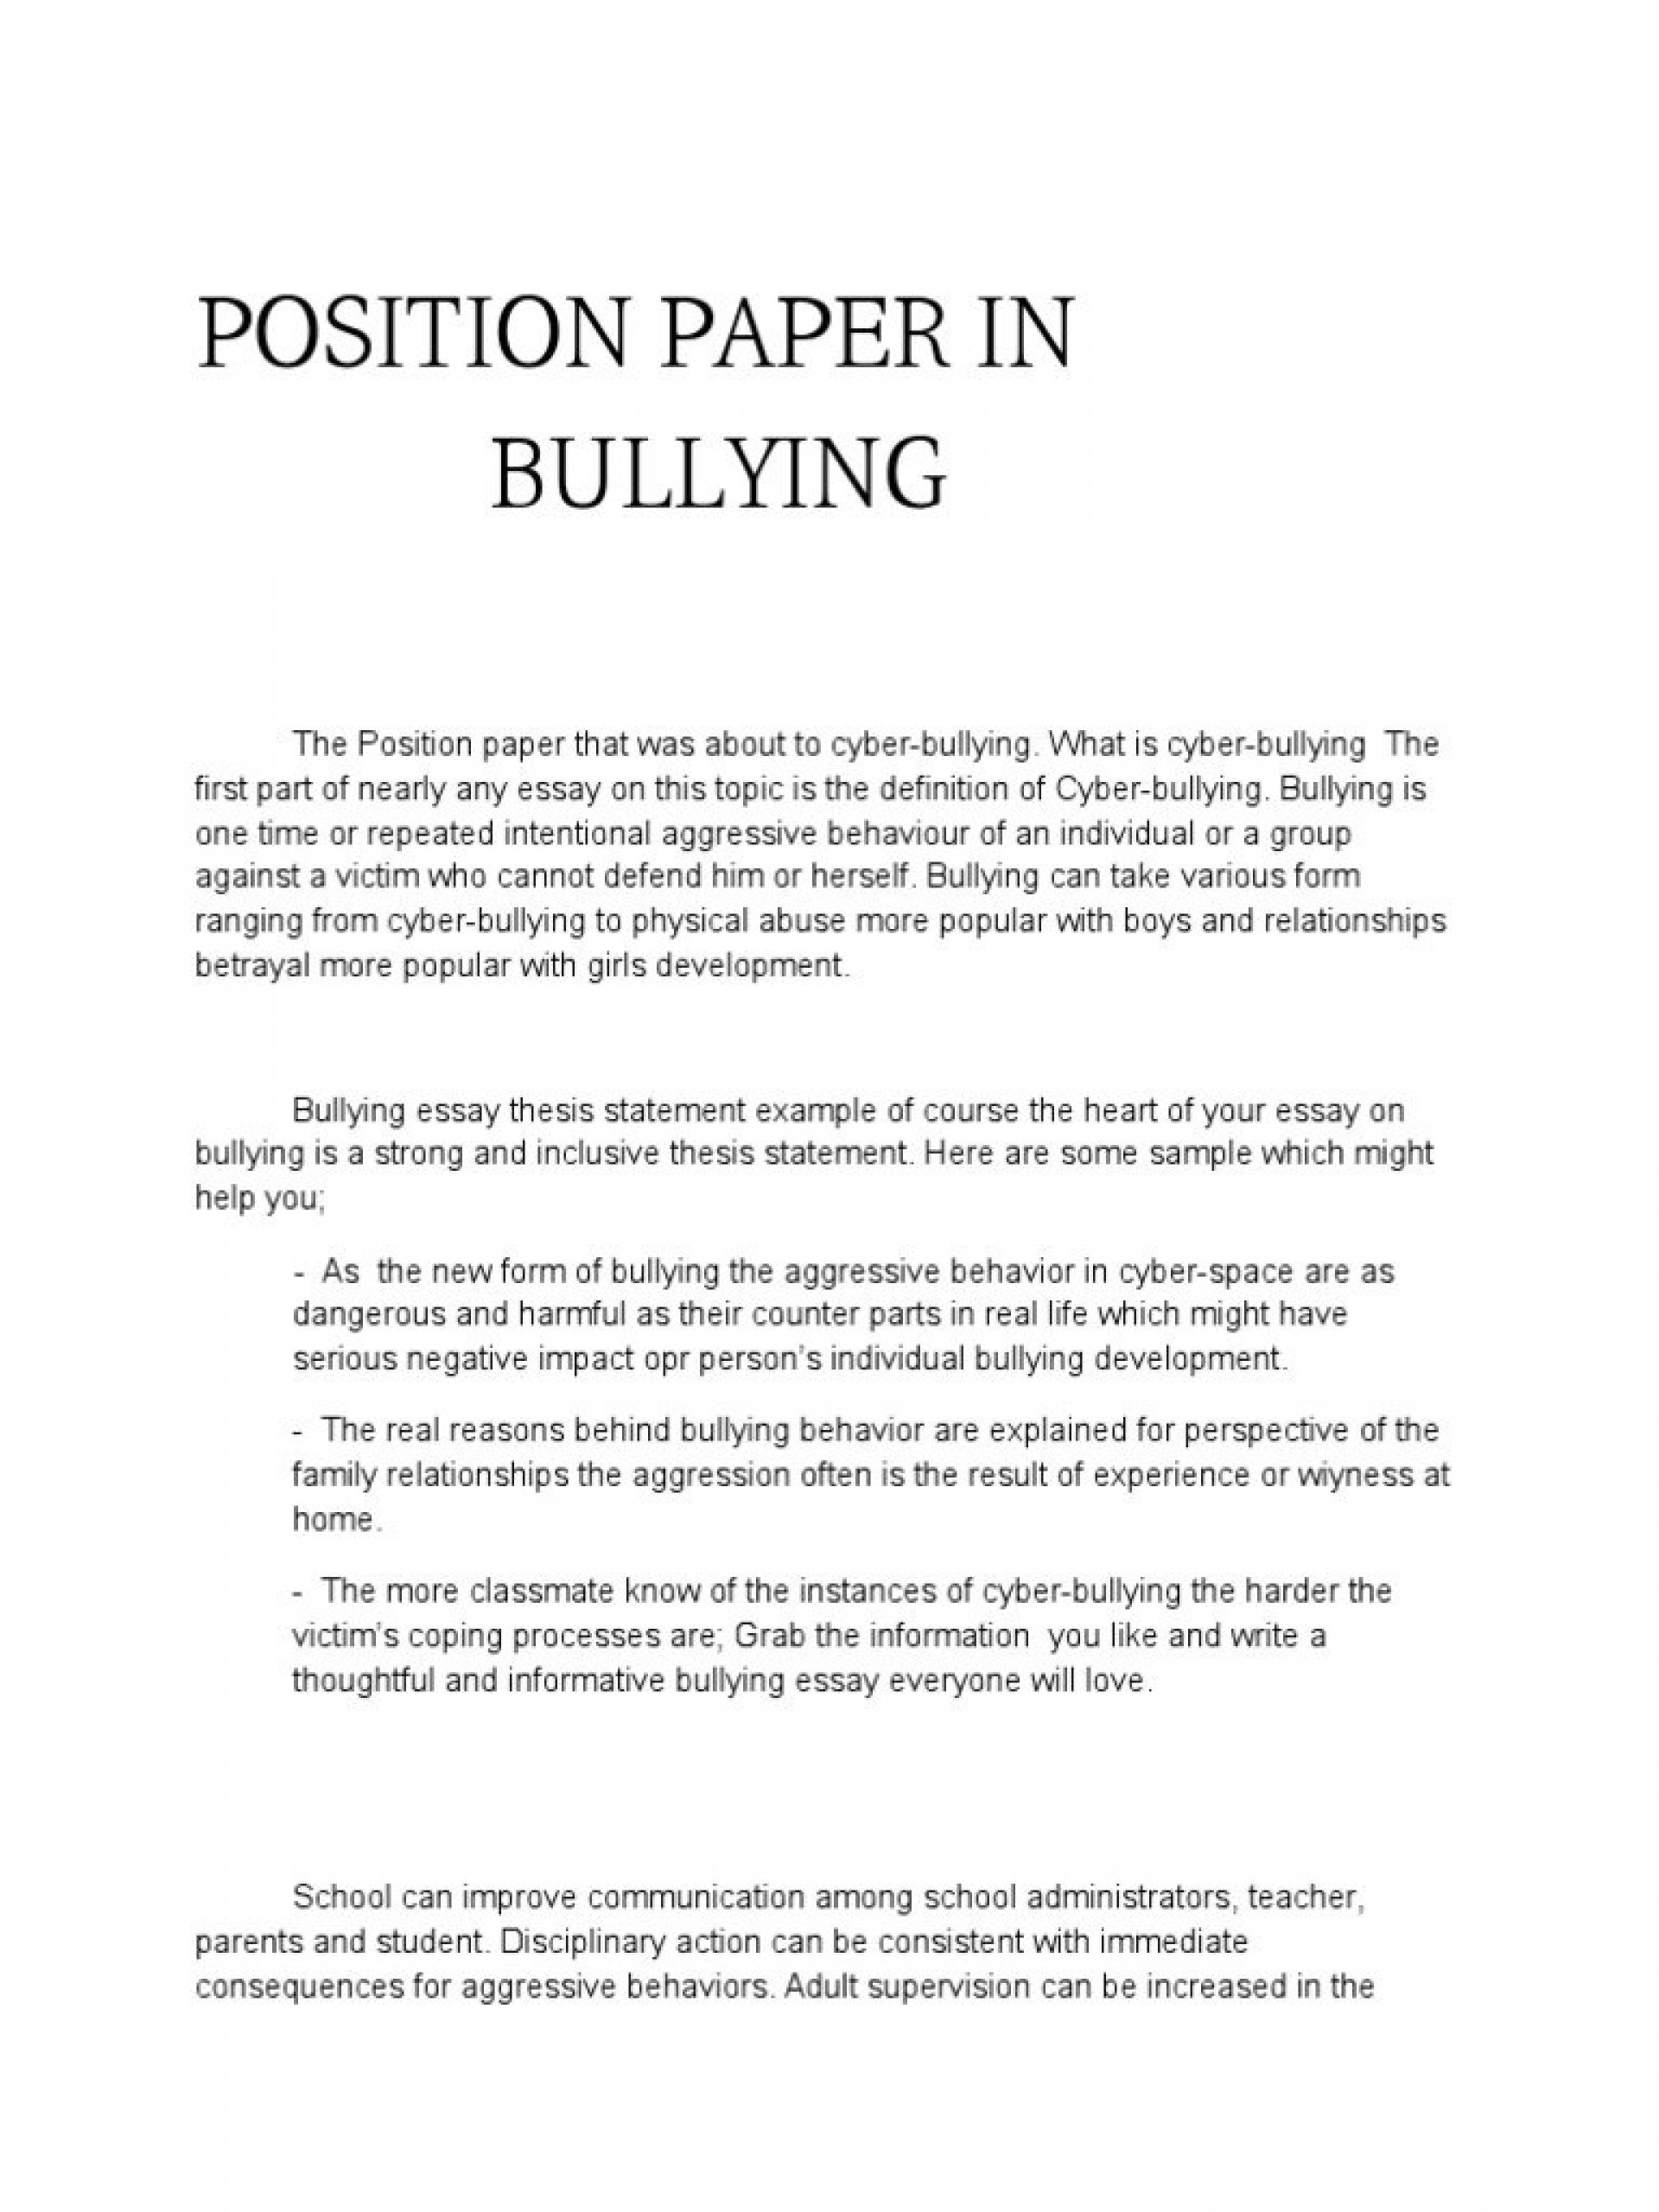 005 Bullying Essay Example Good Conclusion For Academic Writing Service Cause And Effect On In Awful Anti Cyber Argumentative Topics Thesis 1920